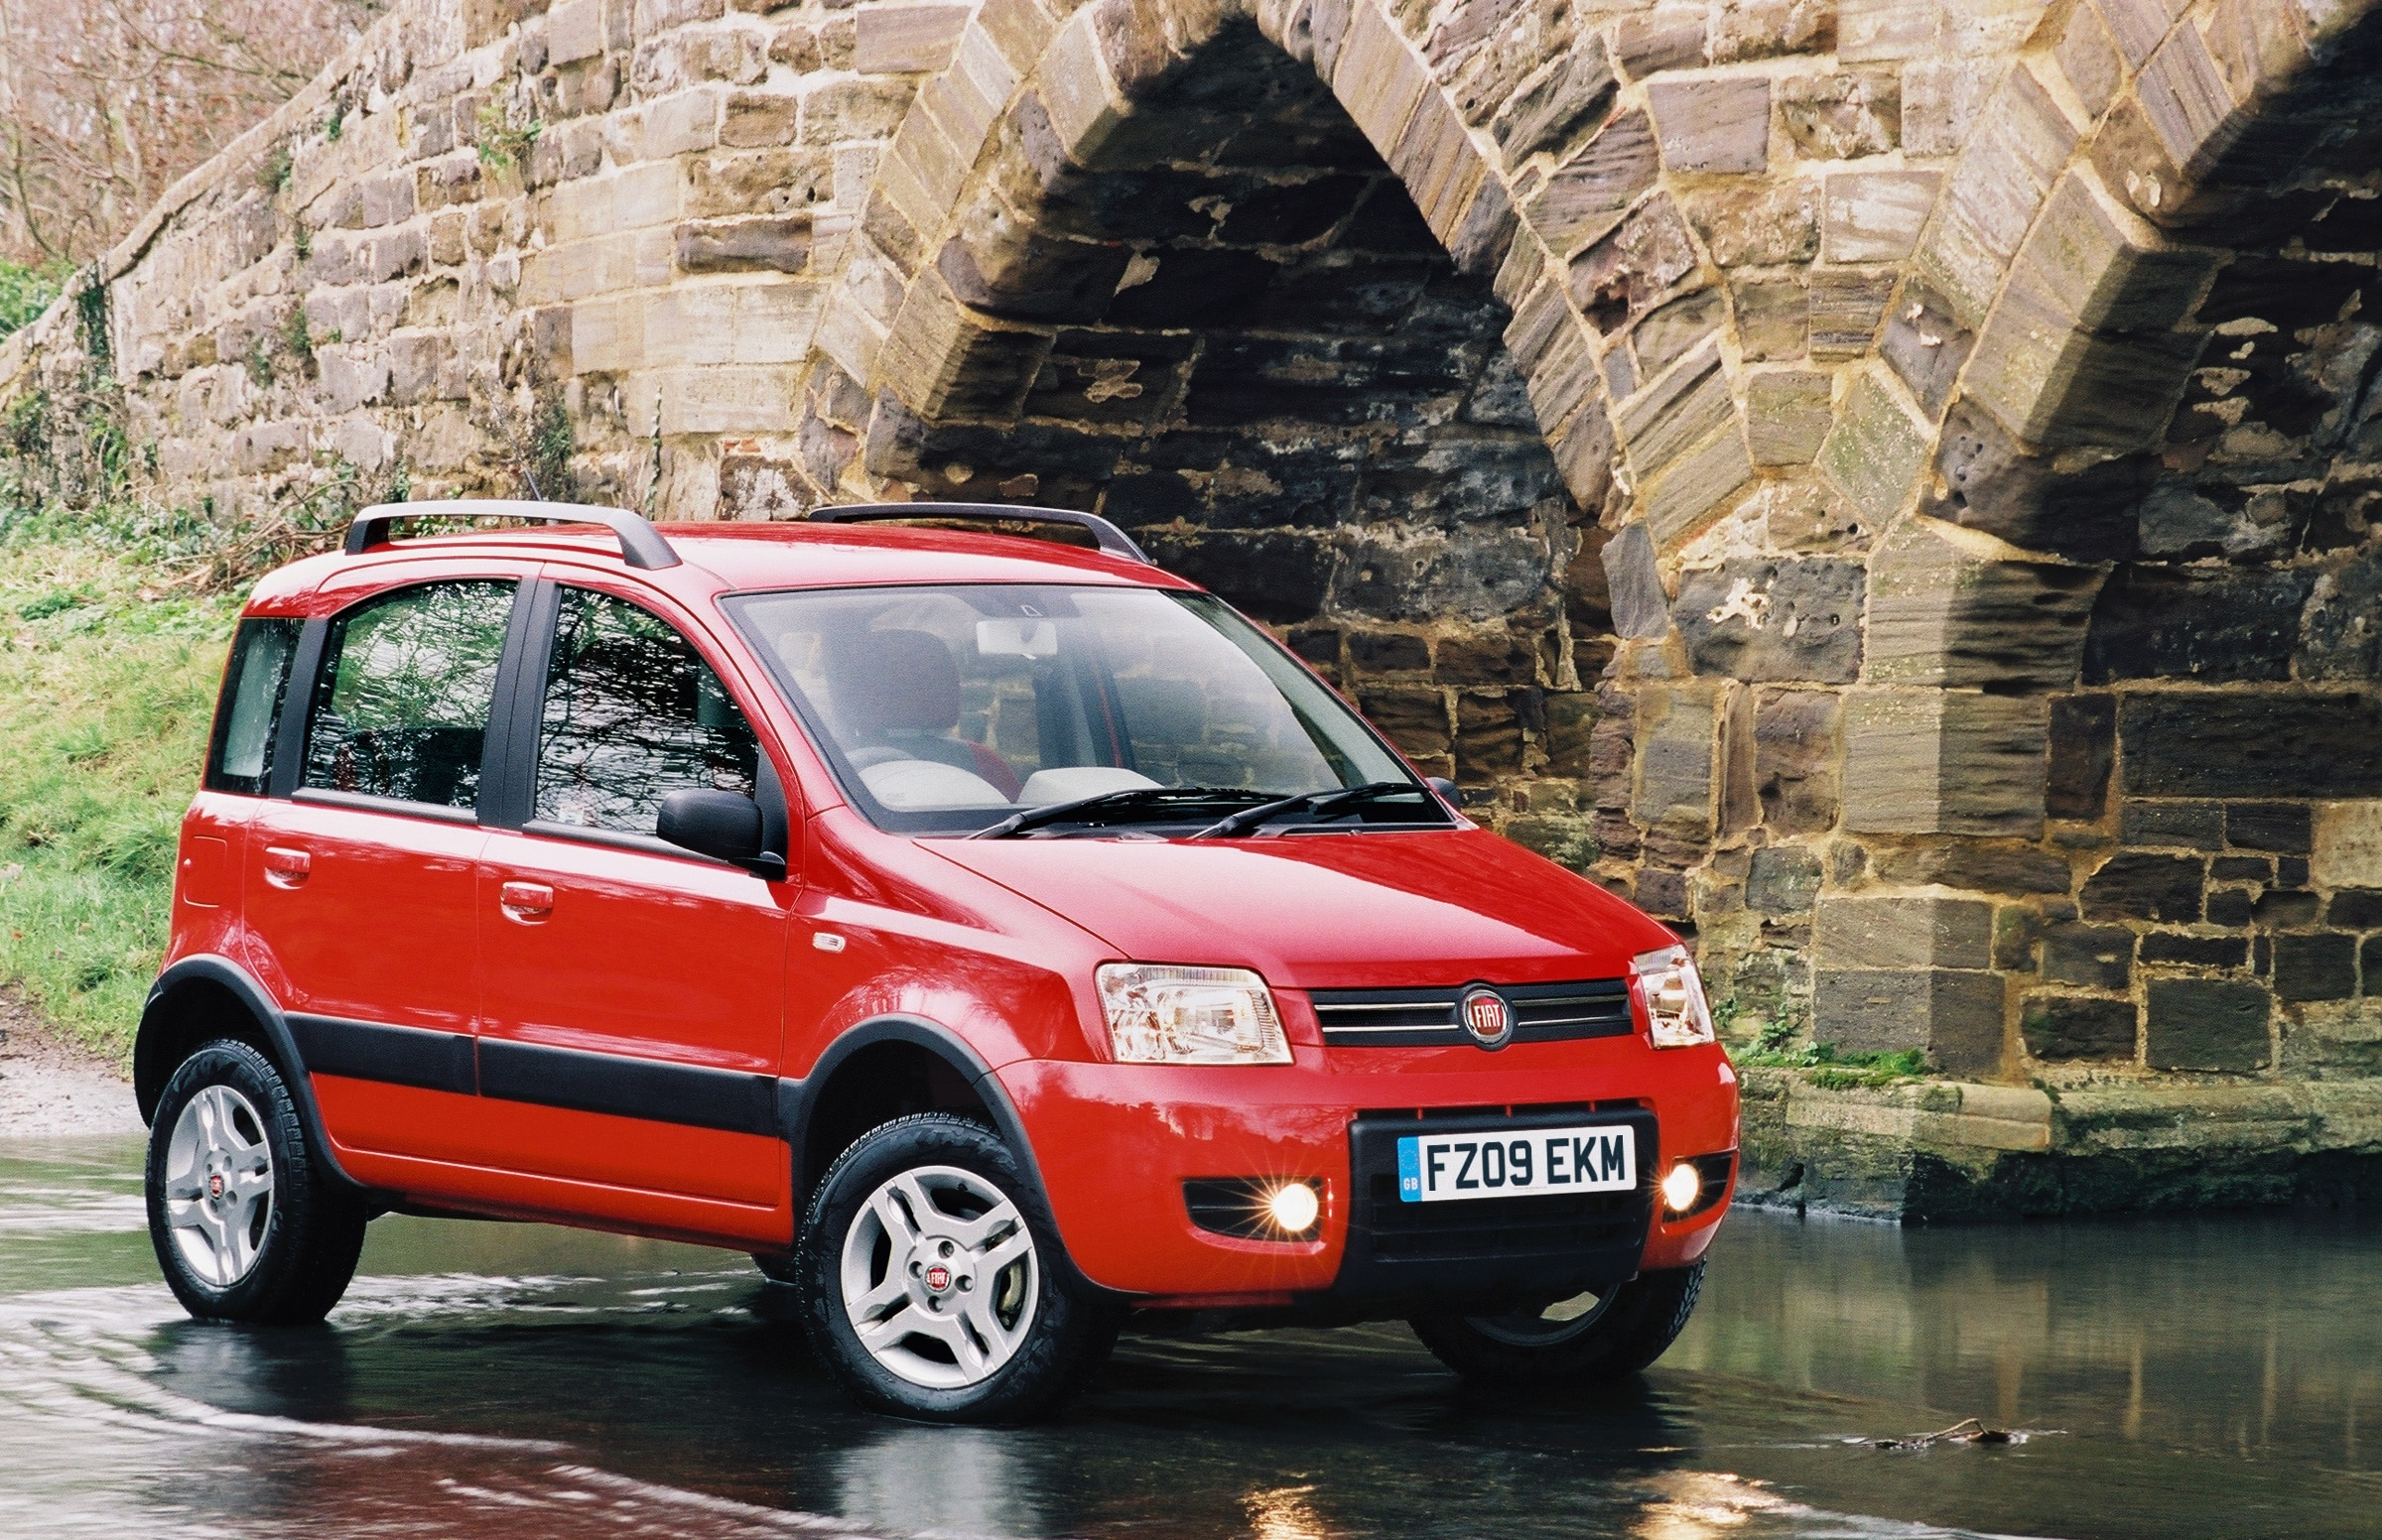 Fiat, Fiat Panda, Fiat Panda 4x4, Panda 4x4, 44, Panda 100hp, Fiat Panda 100hp, motoring, automotive, fire engine, off-road, adventure, car, cars, classic car, retro car, panda buying guide, project car, ebay, ebay motors, autotrader, adrian flux, not2grand, www.not2grand.co.uk